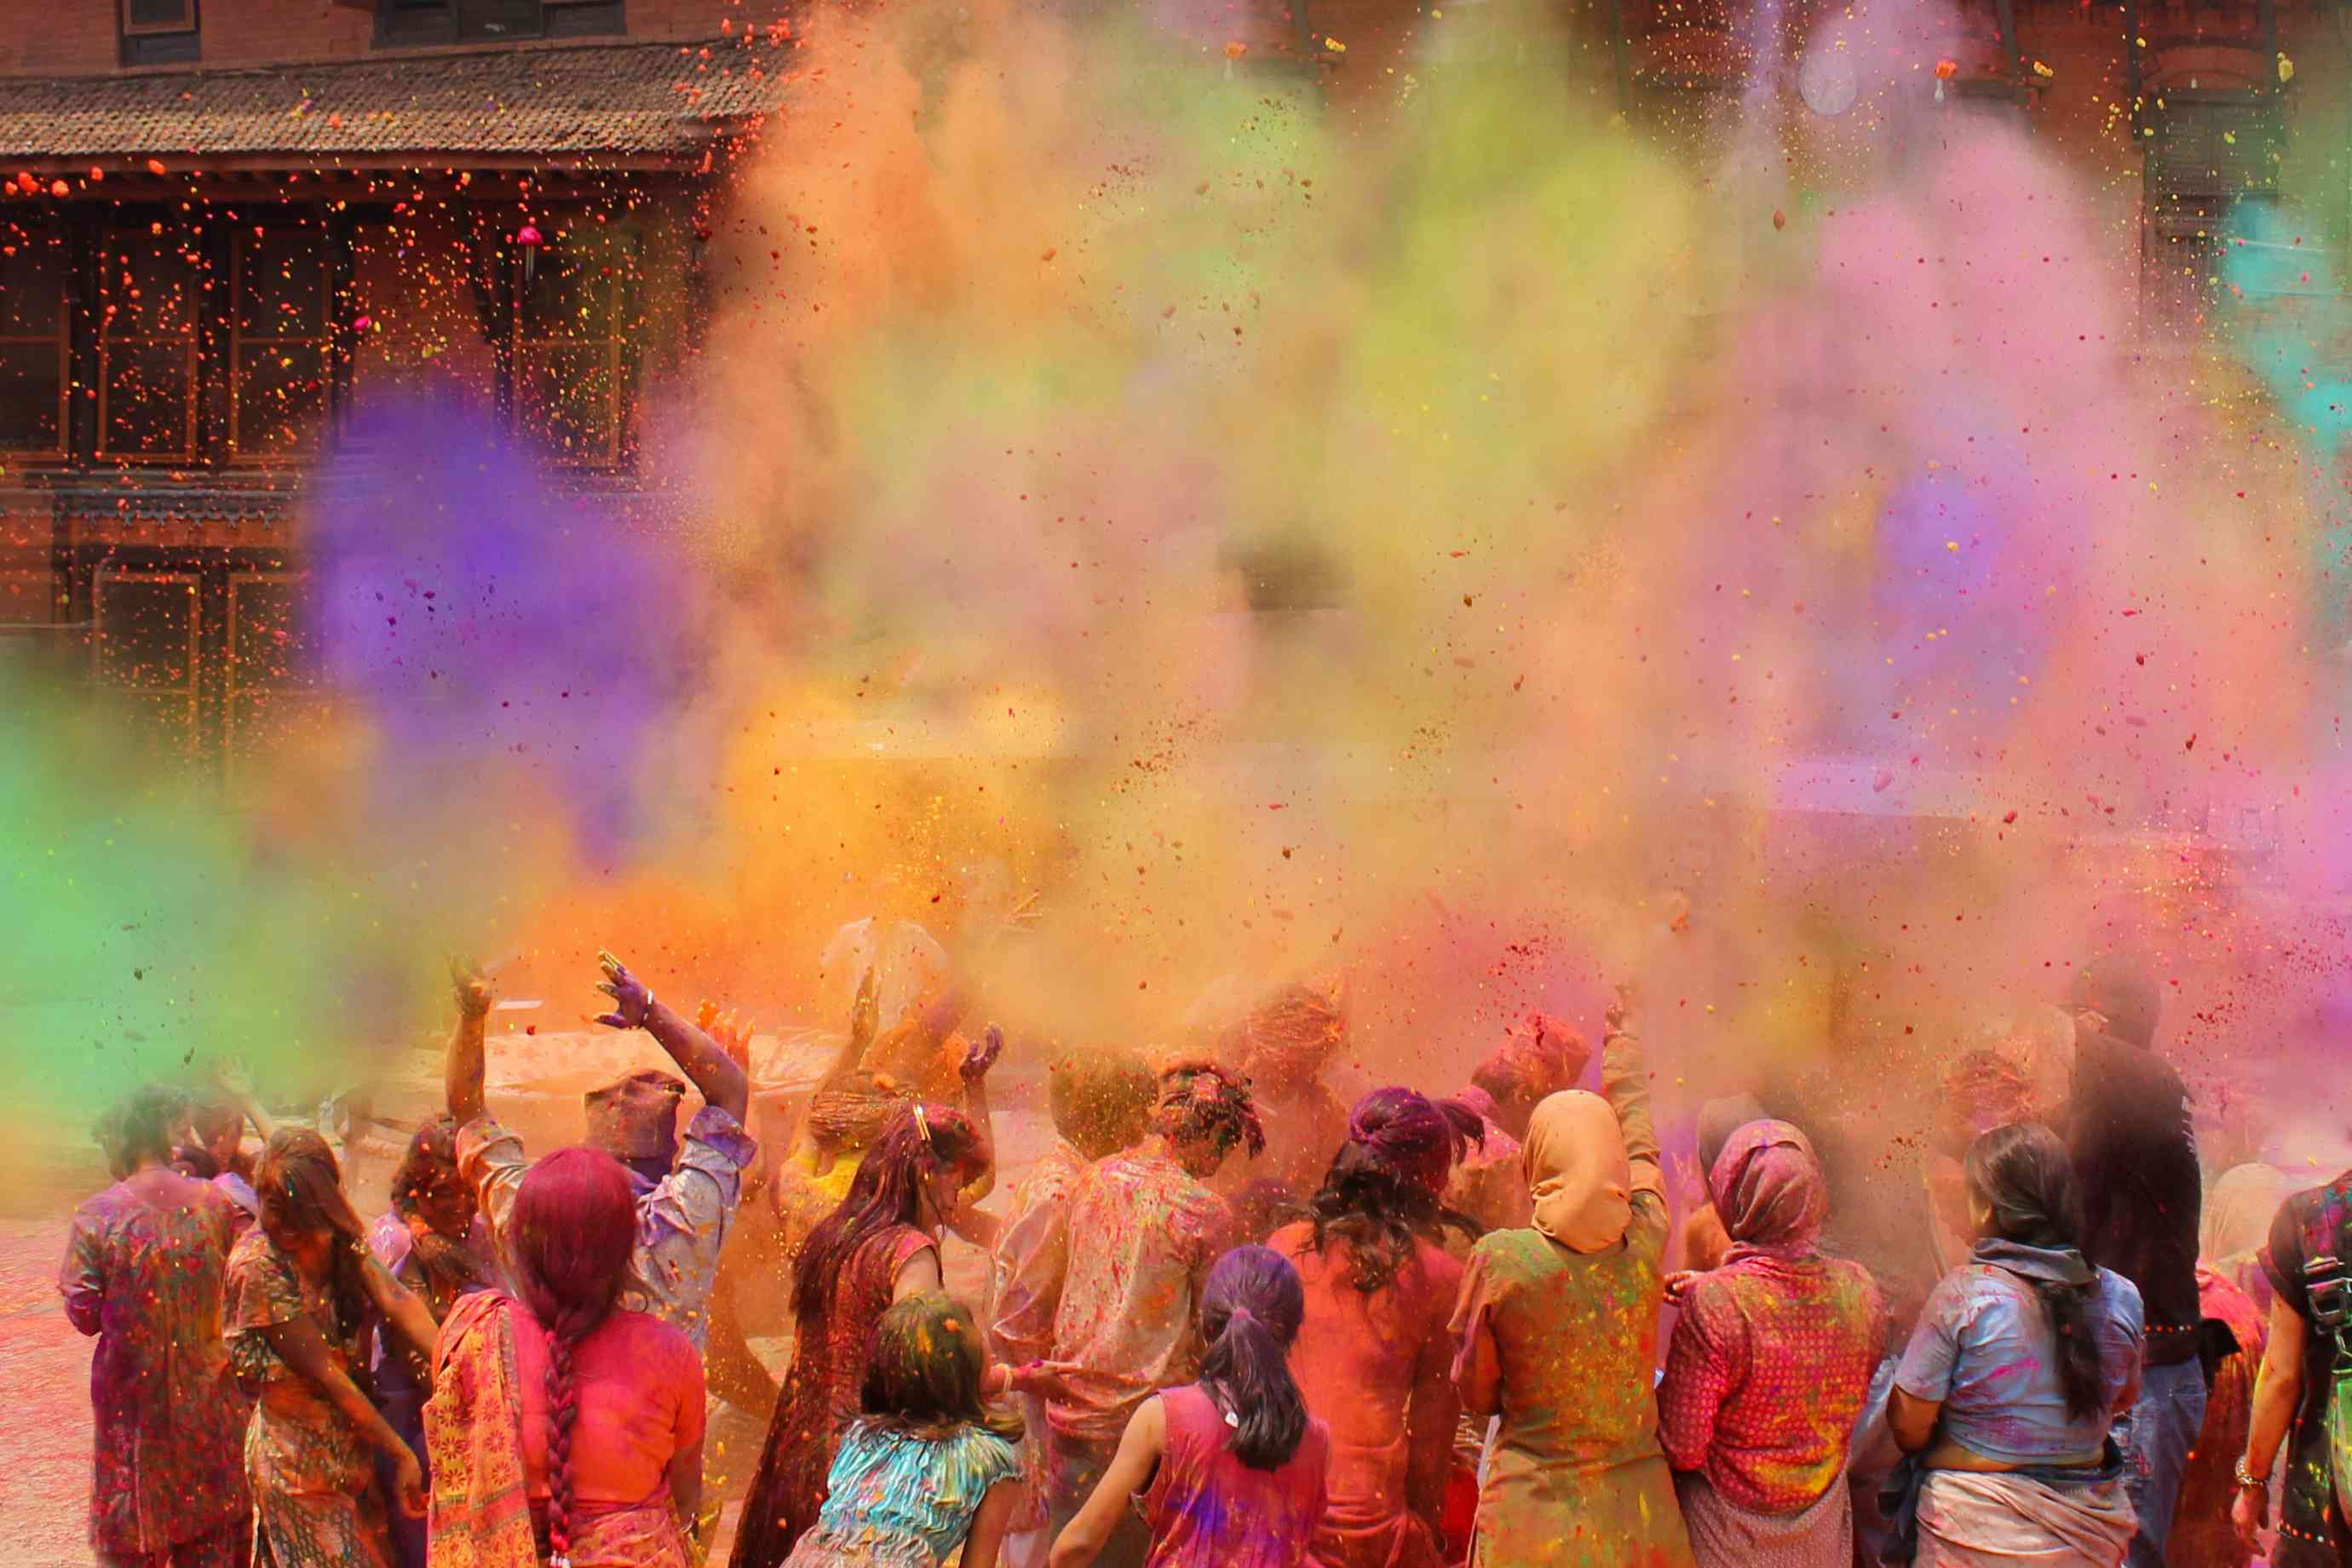 people covered in colored powder throwing colored powder into the air